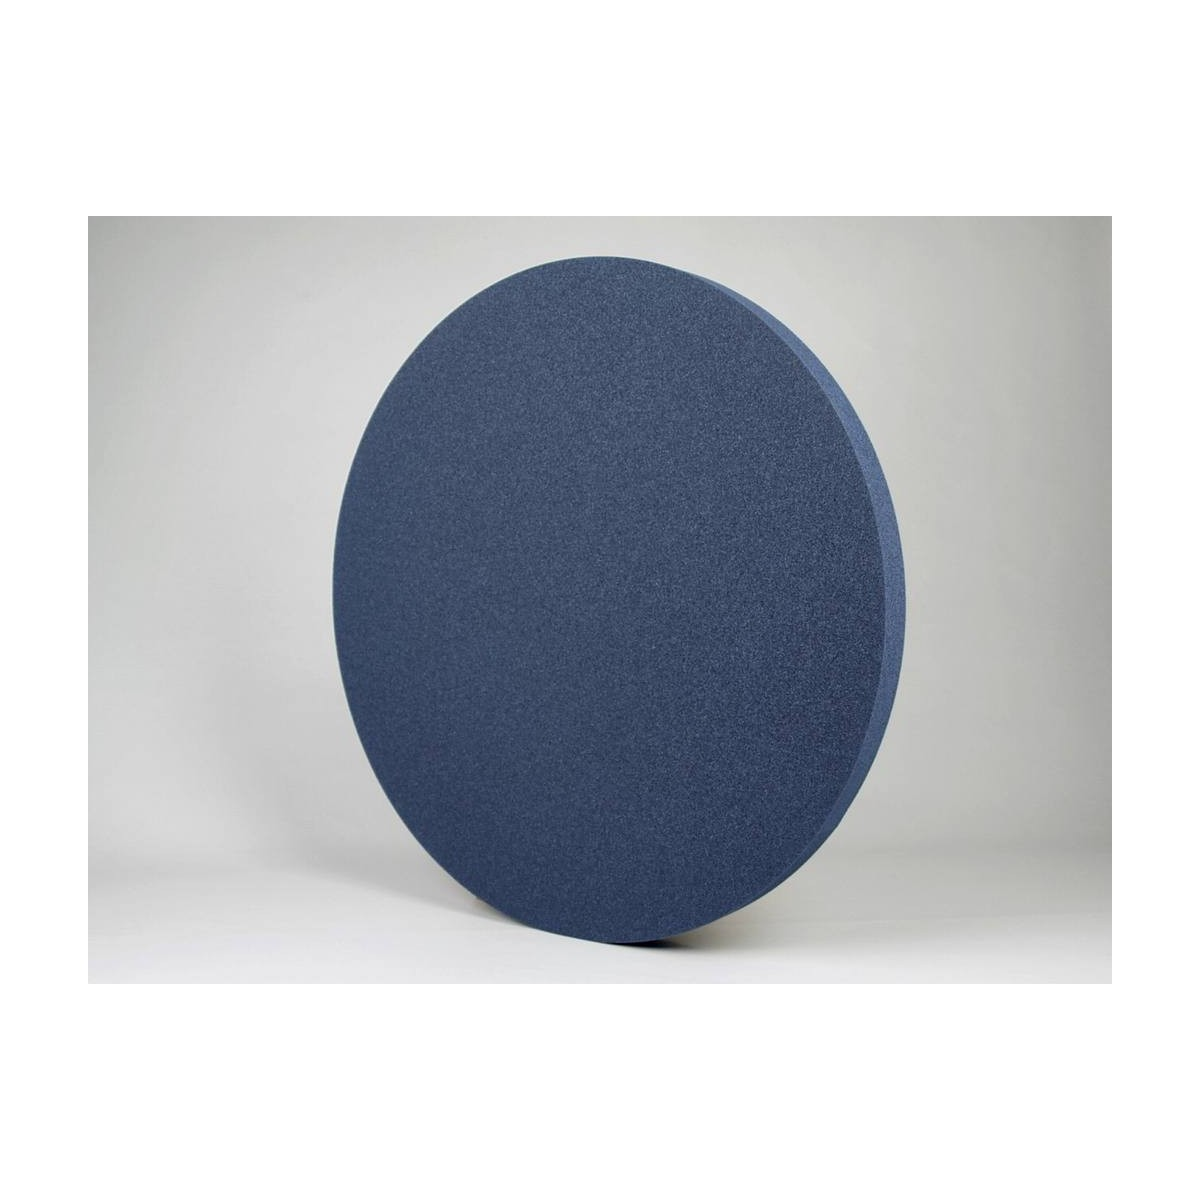 EliAcoustic circle pure blue circulo acustico